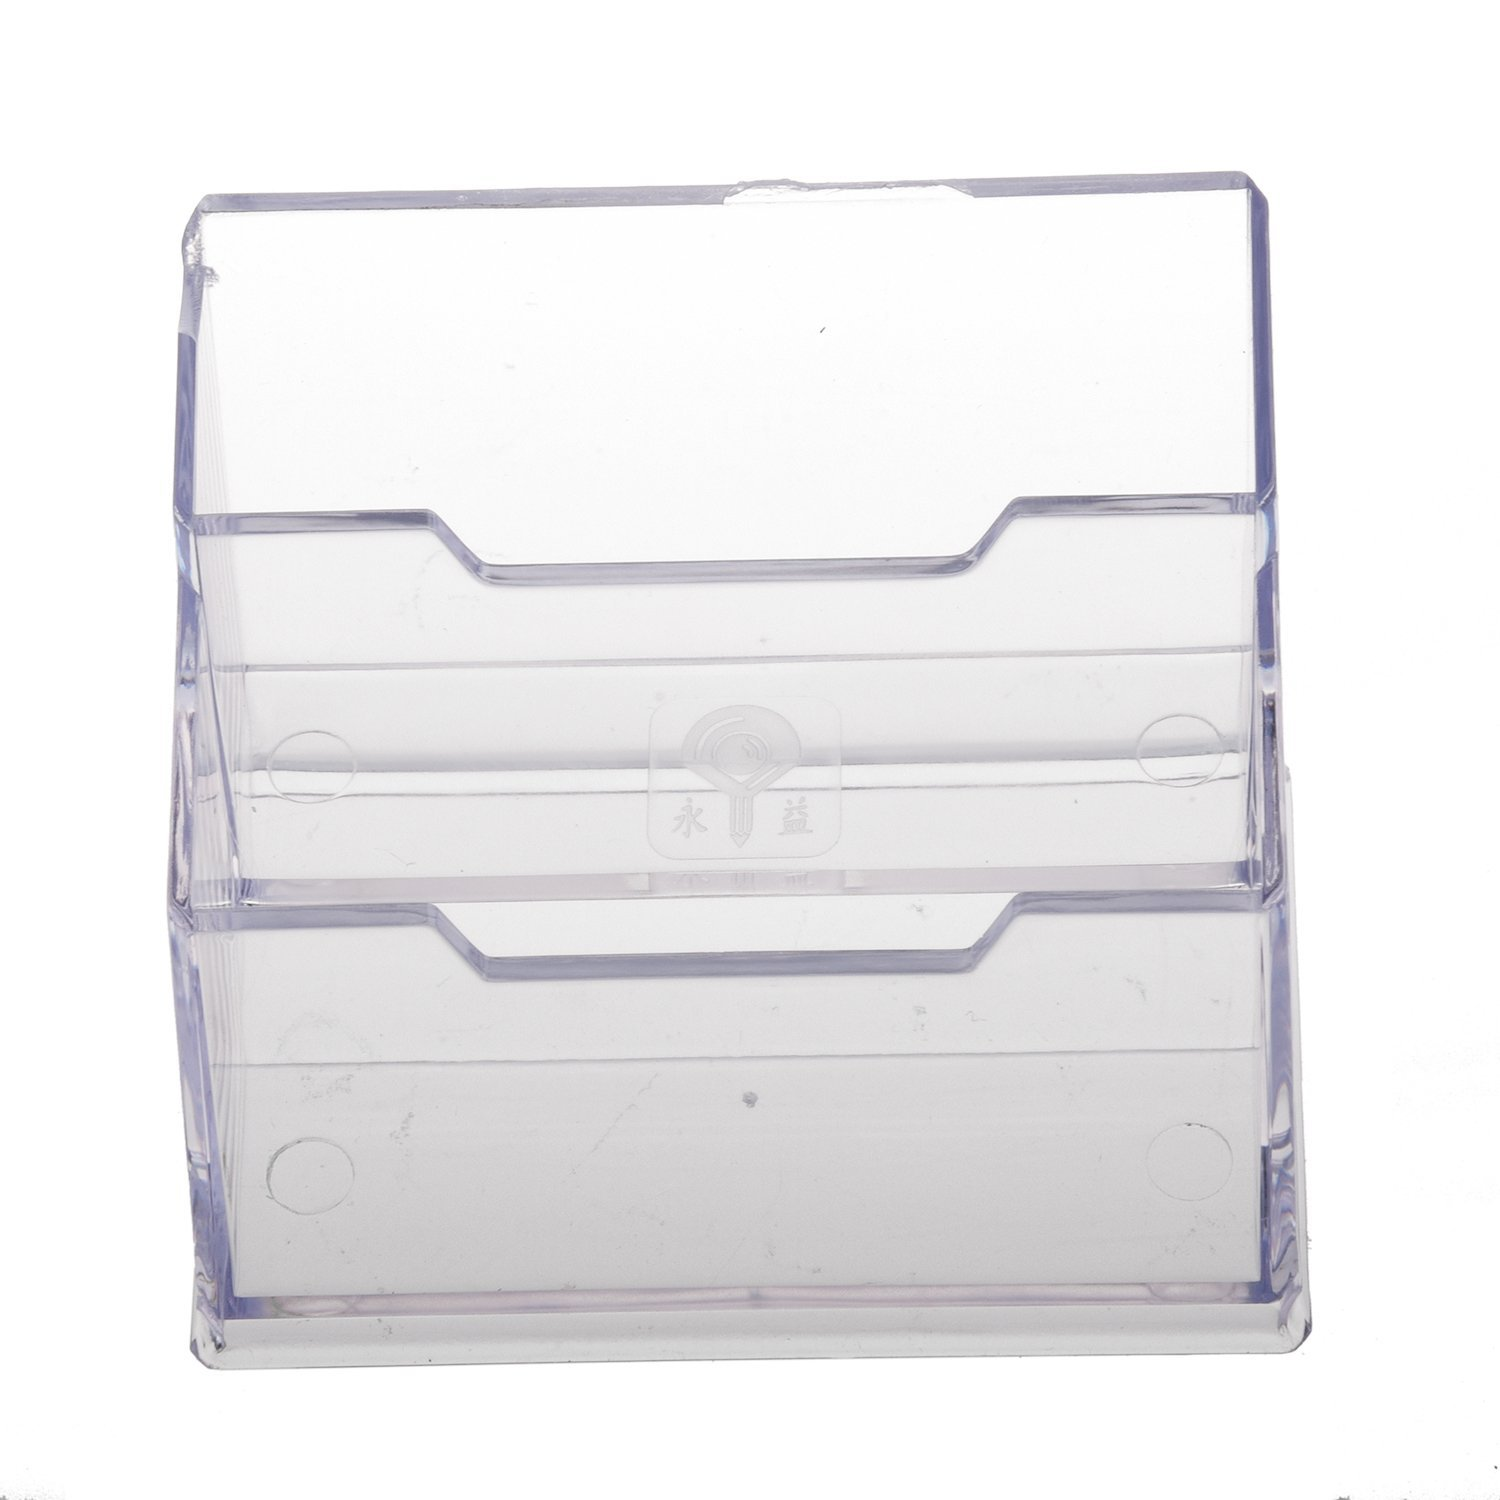 Desktop Business Card Holder Display Stand 2 Compartments Generic